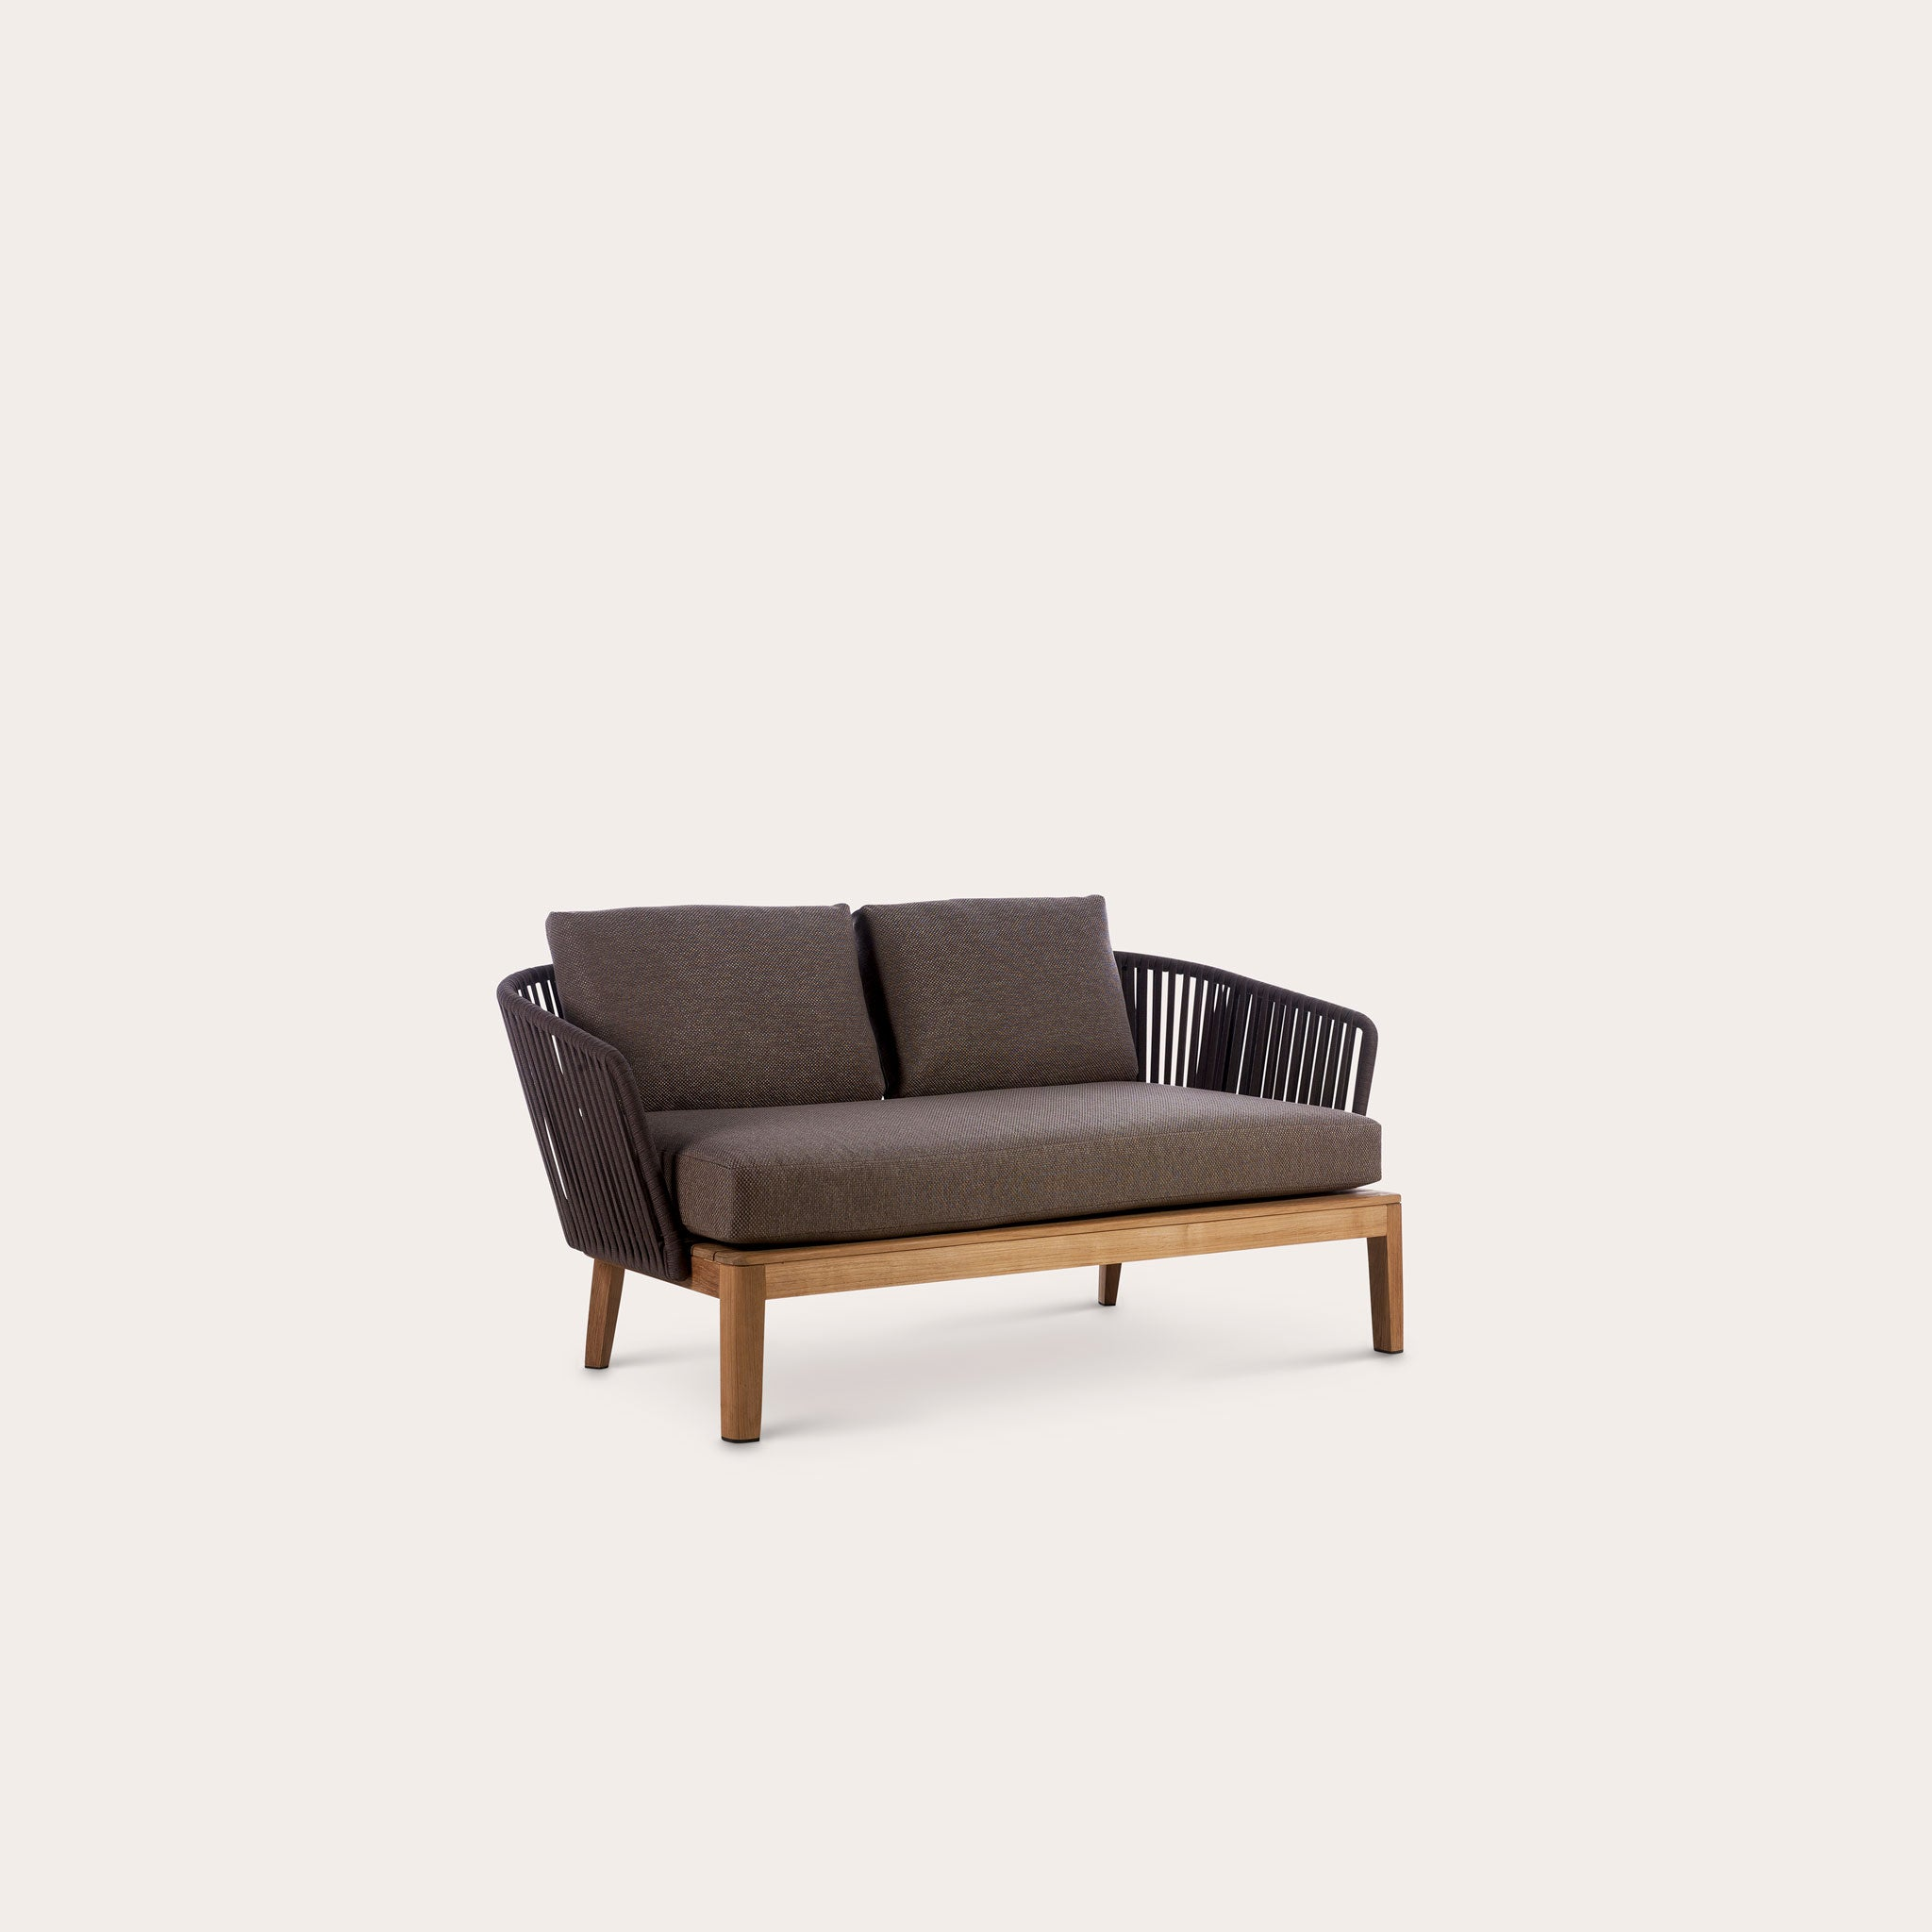 MOOD Sofa Outdoor Studio Segers Designer Furniture Sku: 007-200-11516